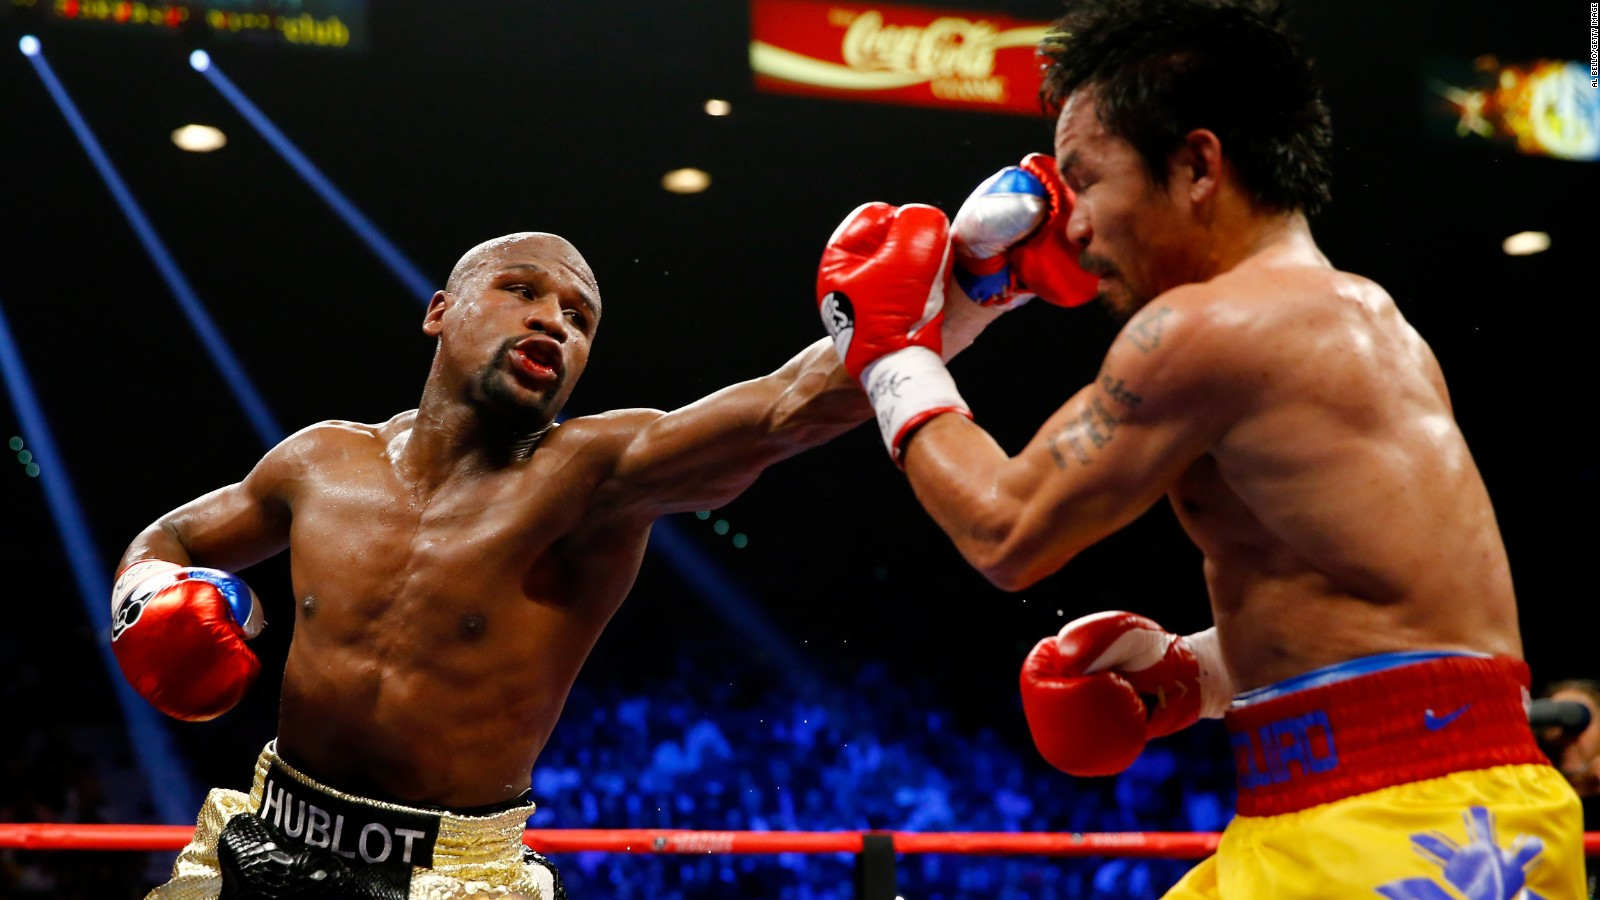 Manny Pacquiao on Floyd Mayweather and his Retirement